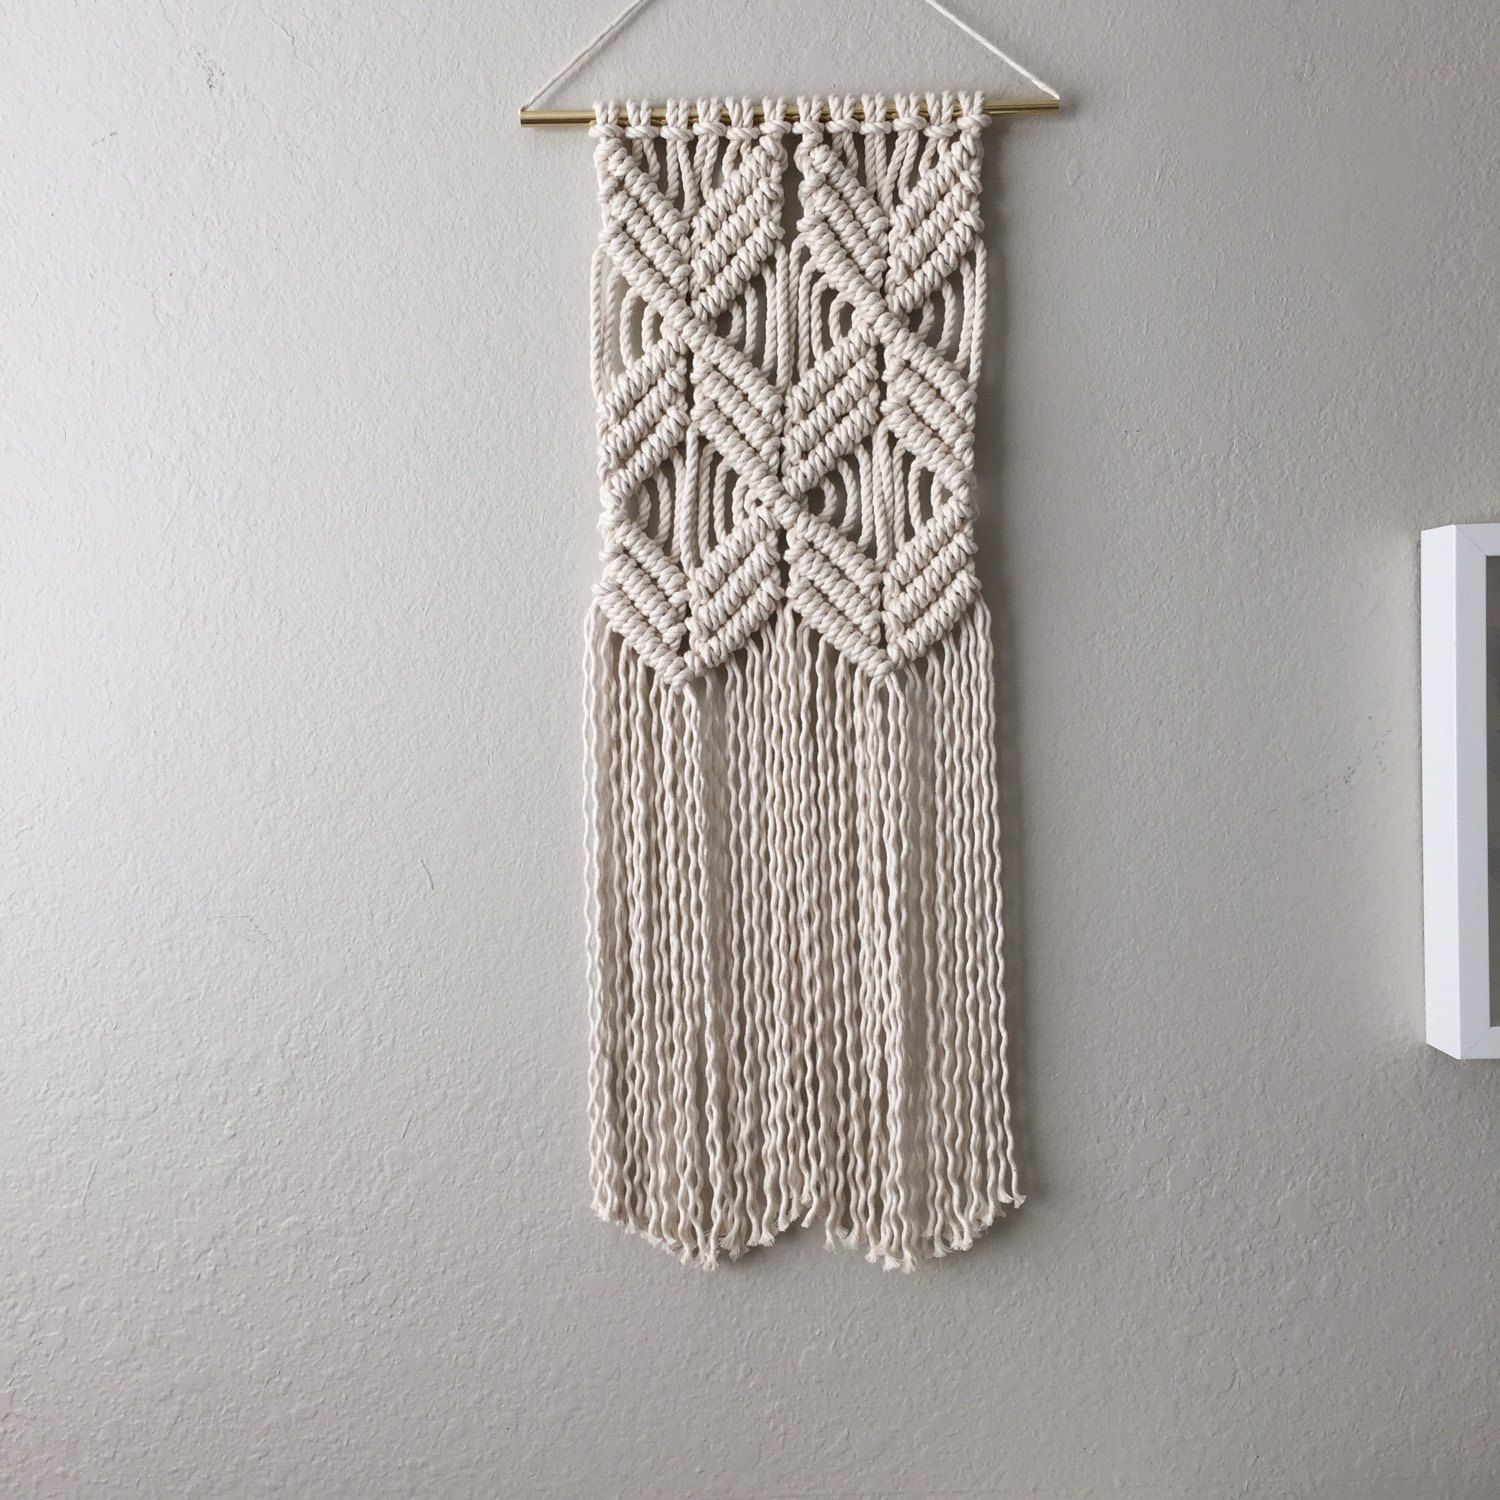 Just Restocked Macrame Wall Hanging Kits.